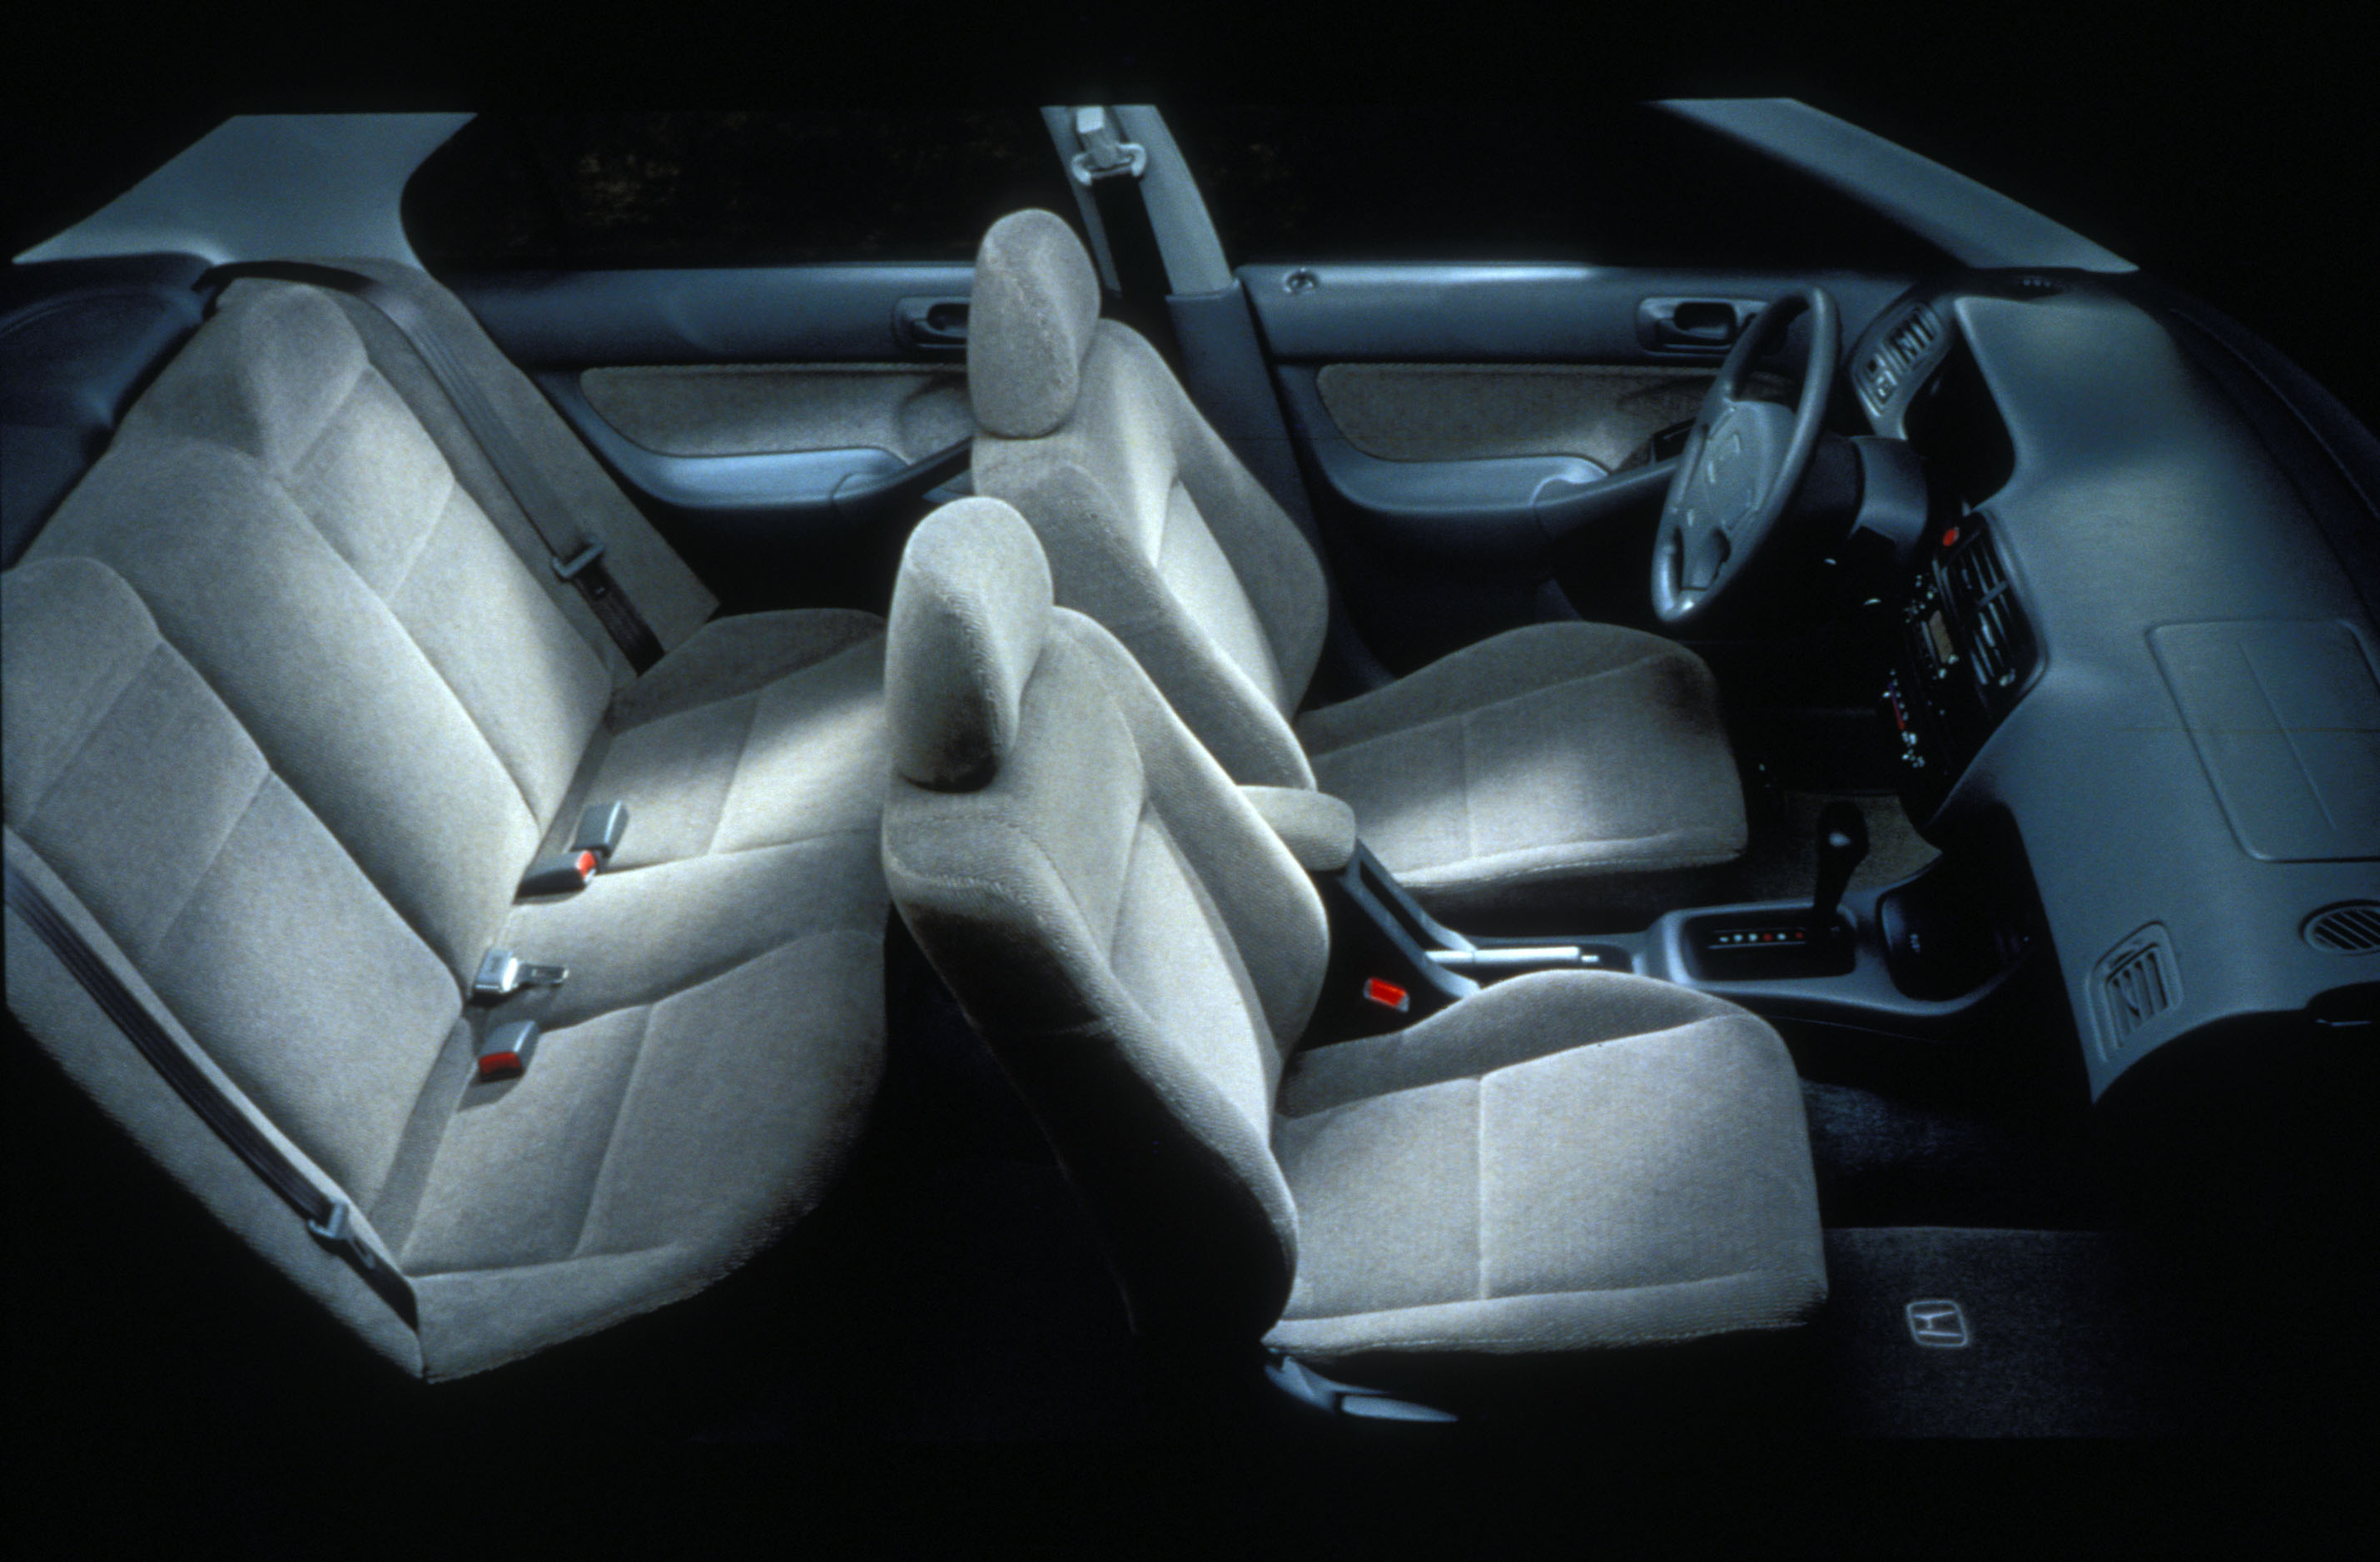 1996 Honda Civic interior